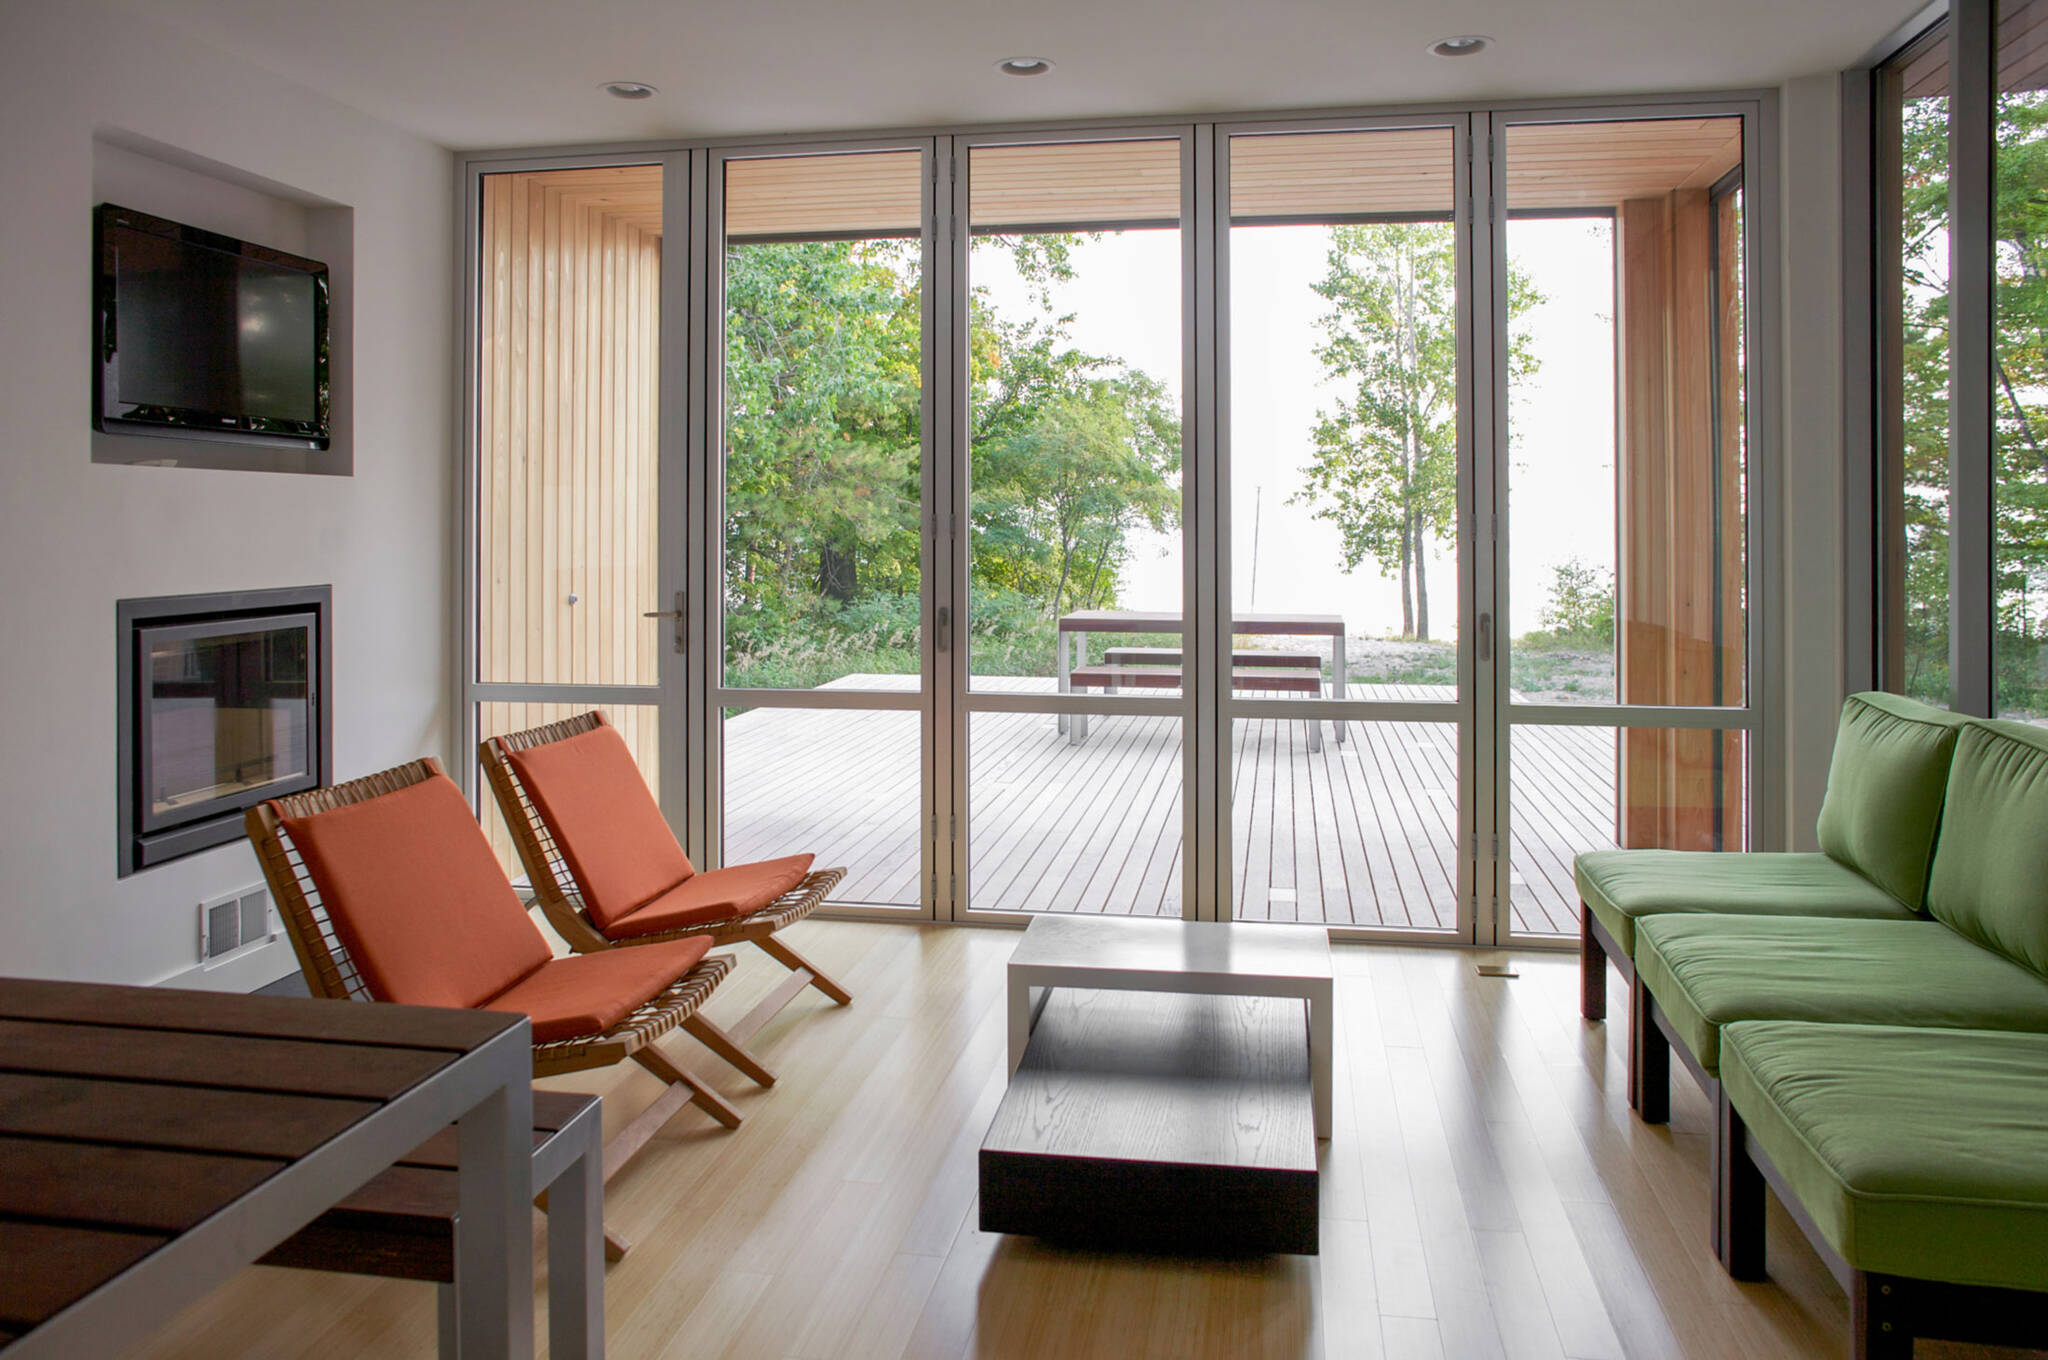 Living room folding doors sequence of the sustainable lake house project in Omena, Michigan designed by the architecture studio Danny Forster & Architecture